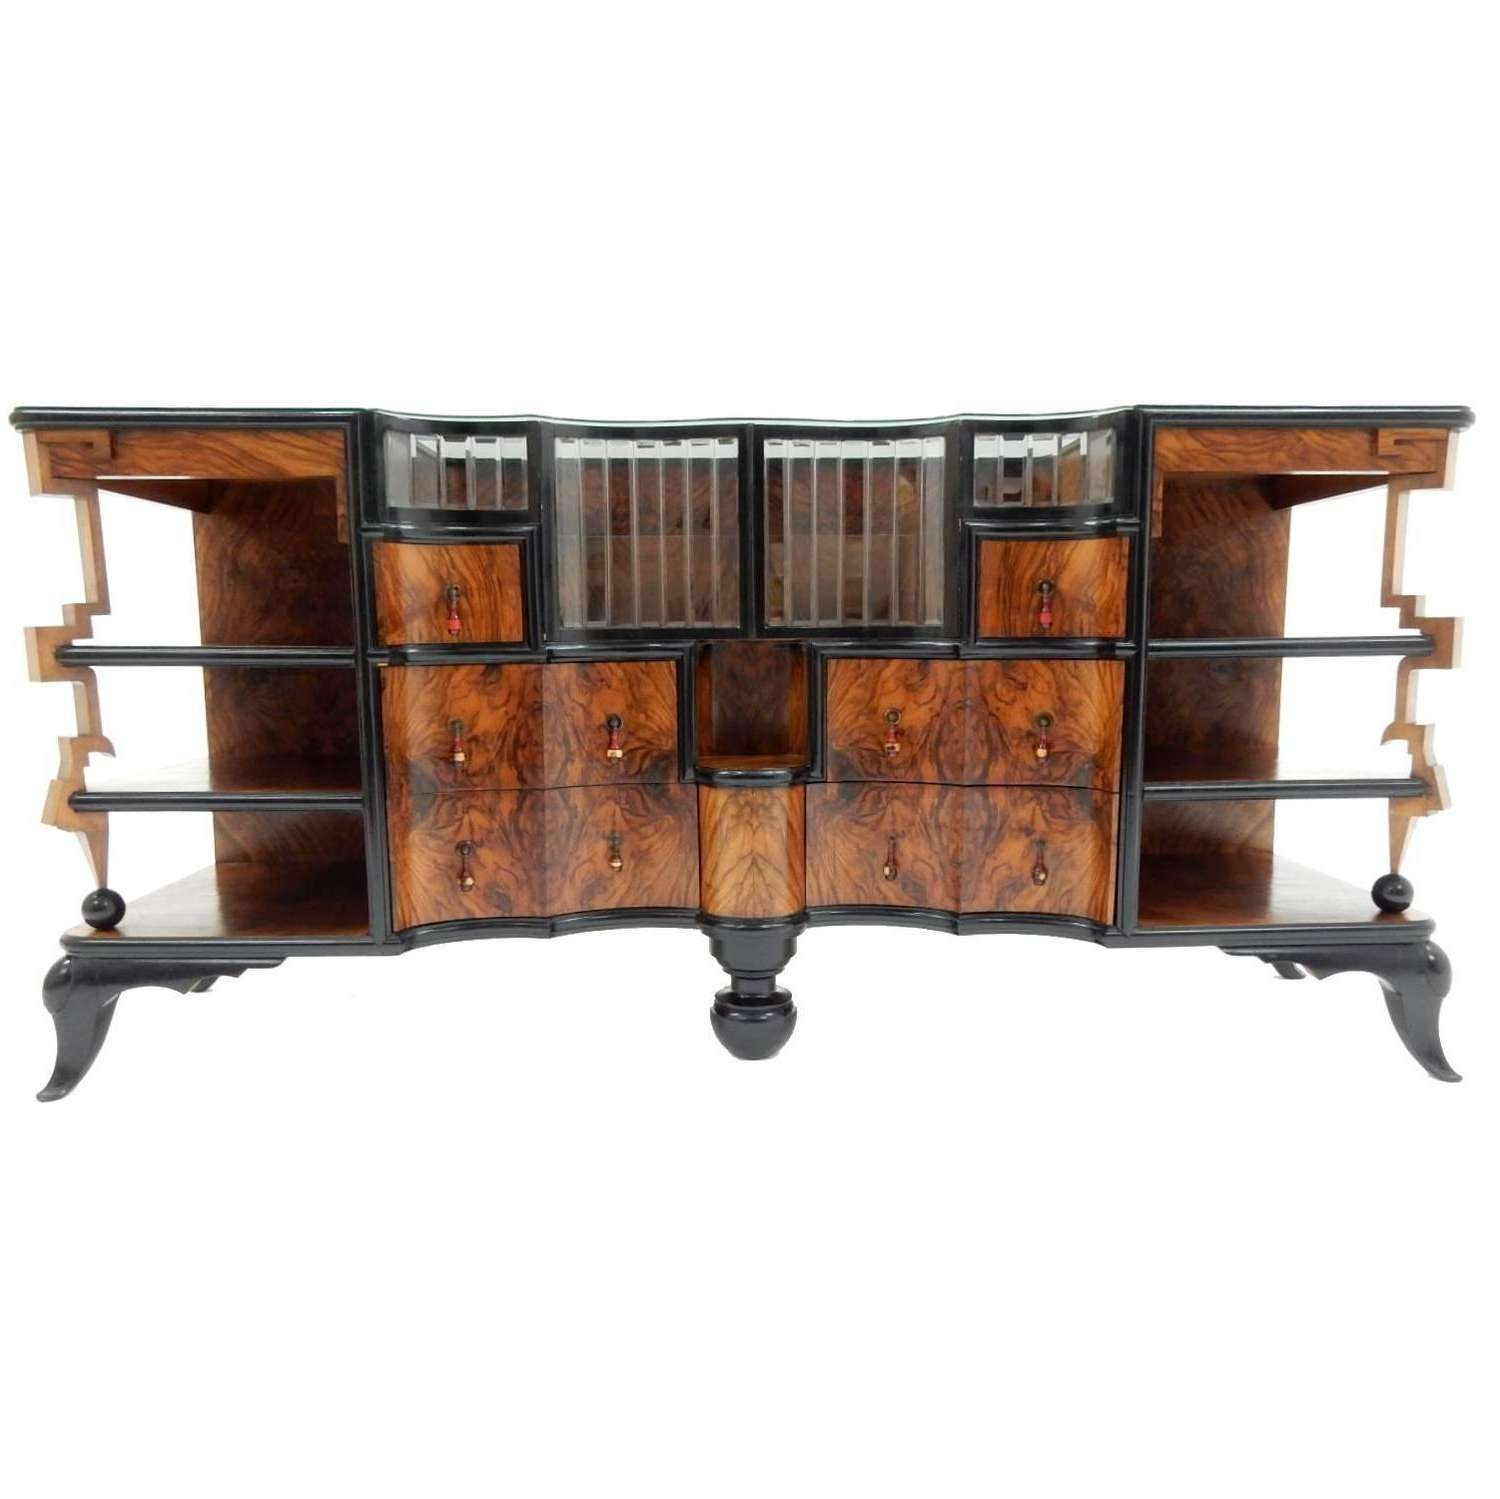 1920S 1930S Art Deco Burl Wood Dry Bar Sideboard Cabinet For Sale In Sideboards Bar Cabinet (View 1 of 20)